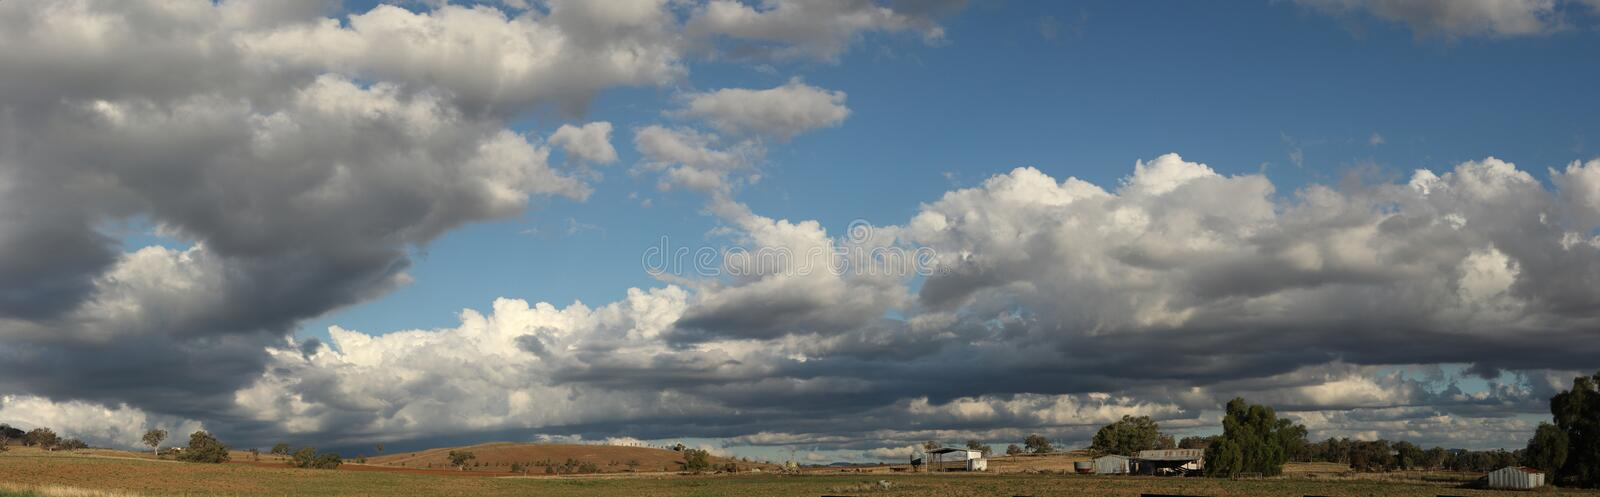 Panoramic view of large open dry drought affected farm fields under stretching cloud filled blue skies with farm buildings in. Rural New South Wales, Australia stock photography